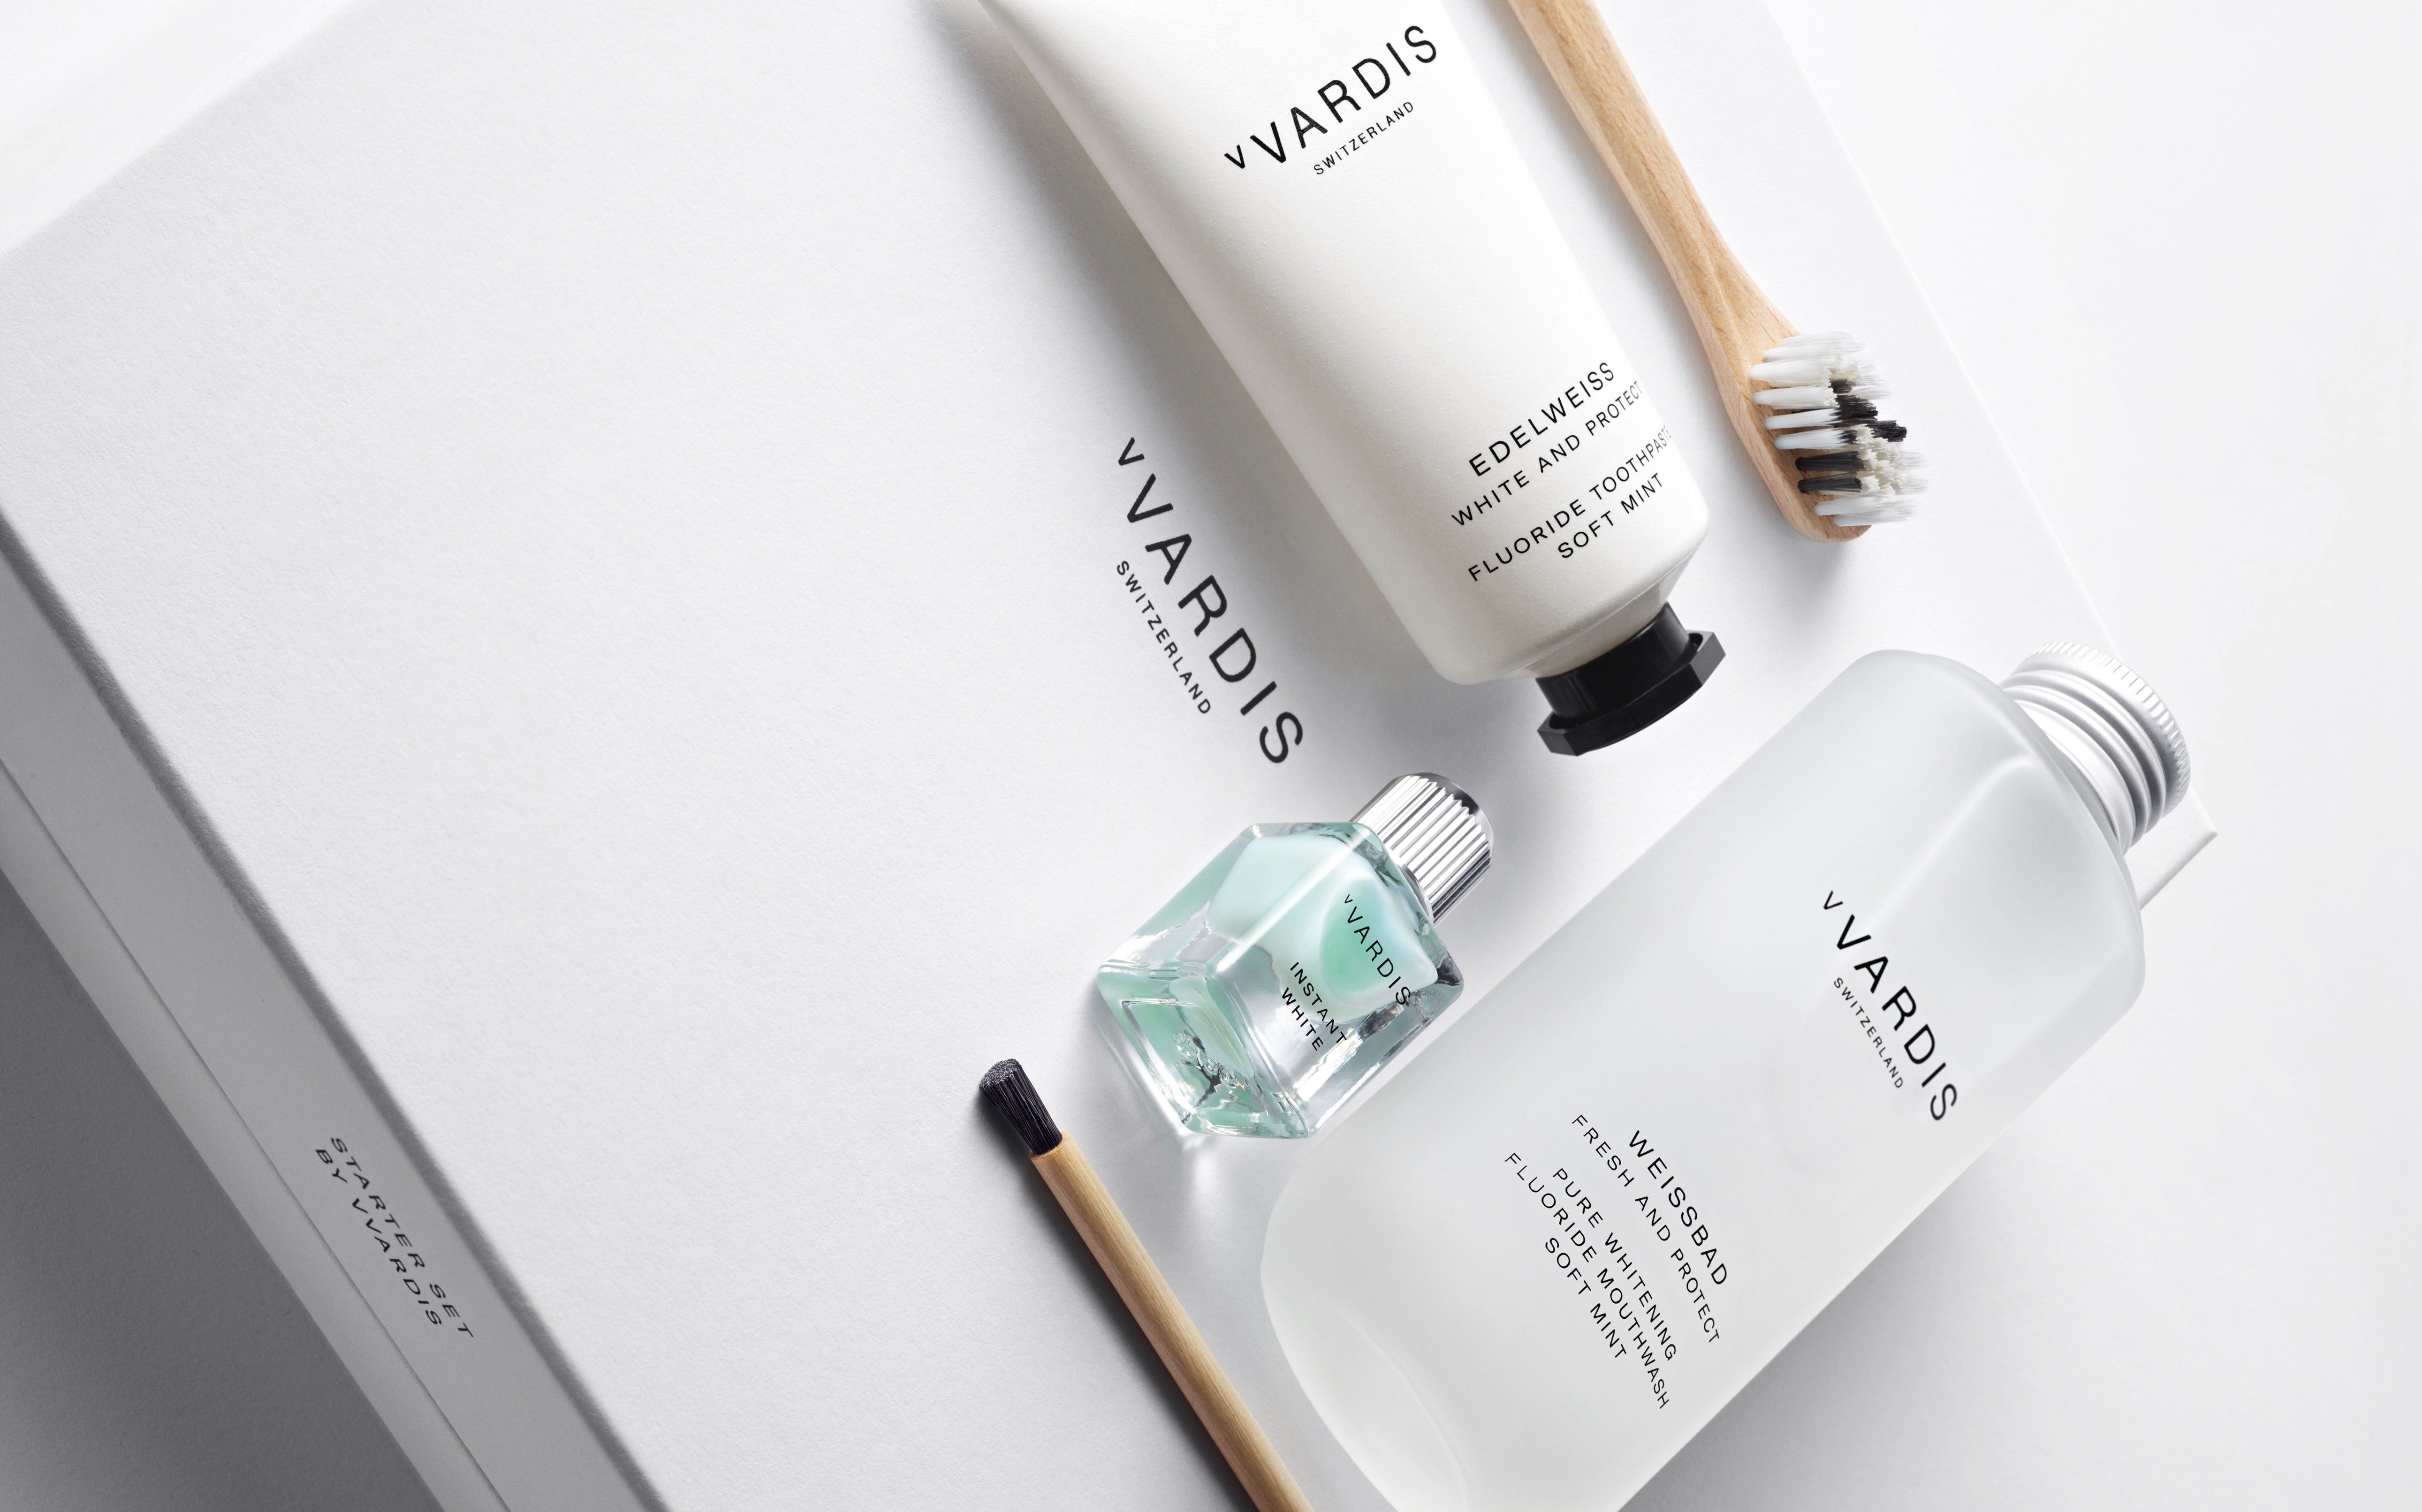 Products from oral care company Vvardis come in luxury company. Vvardis.